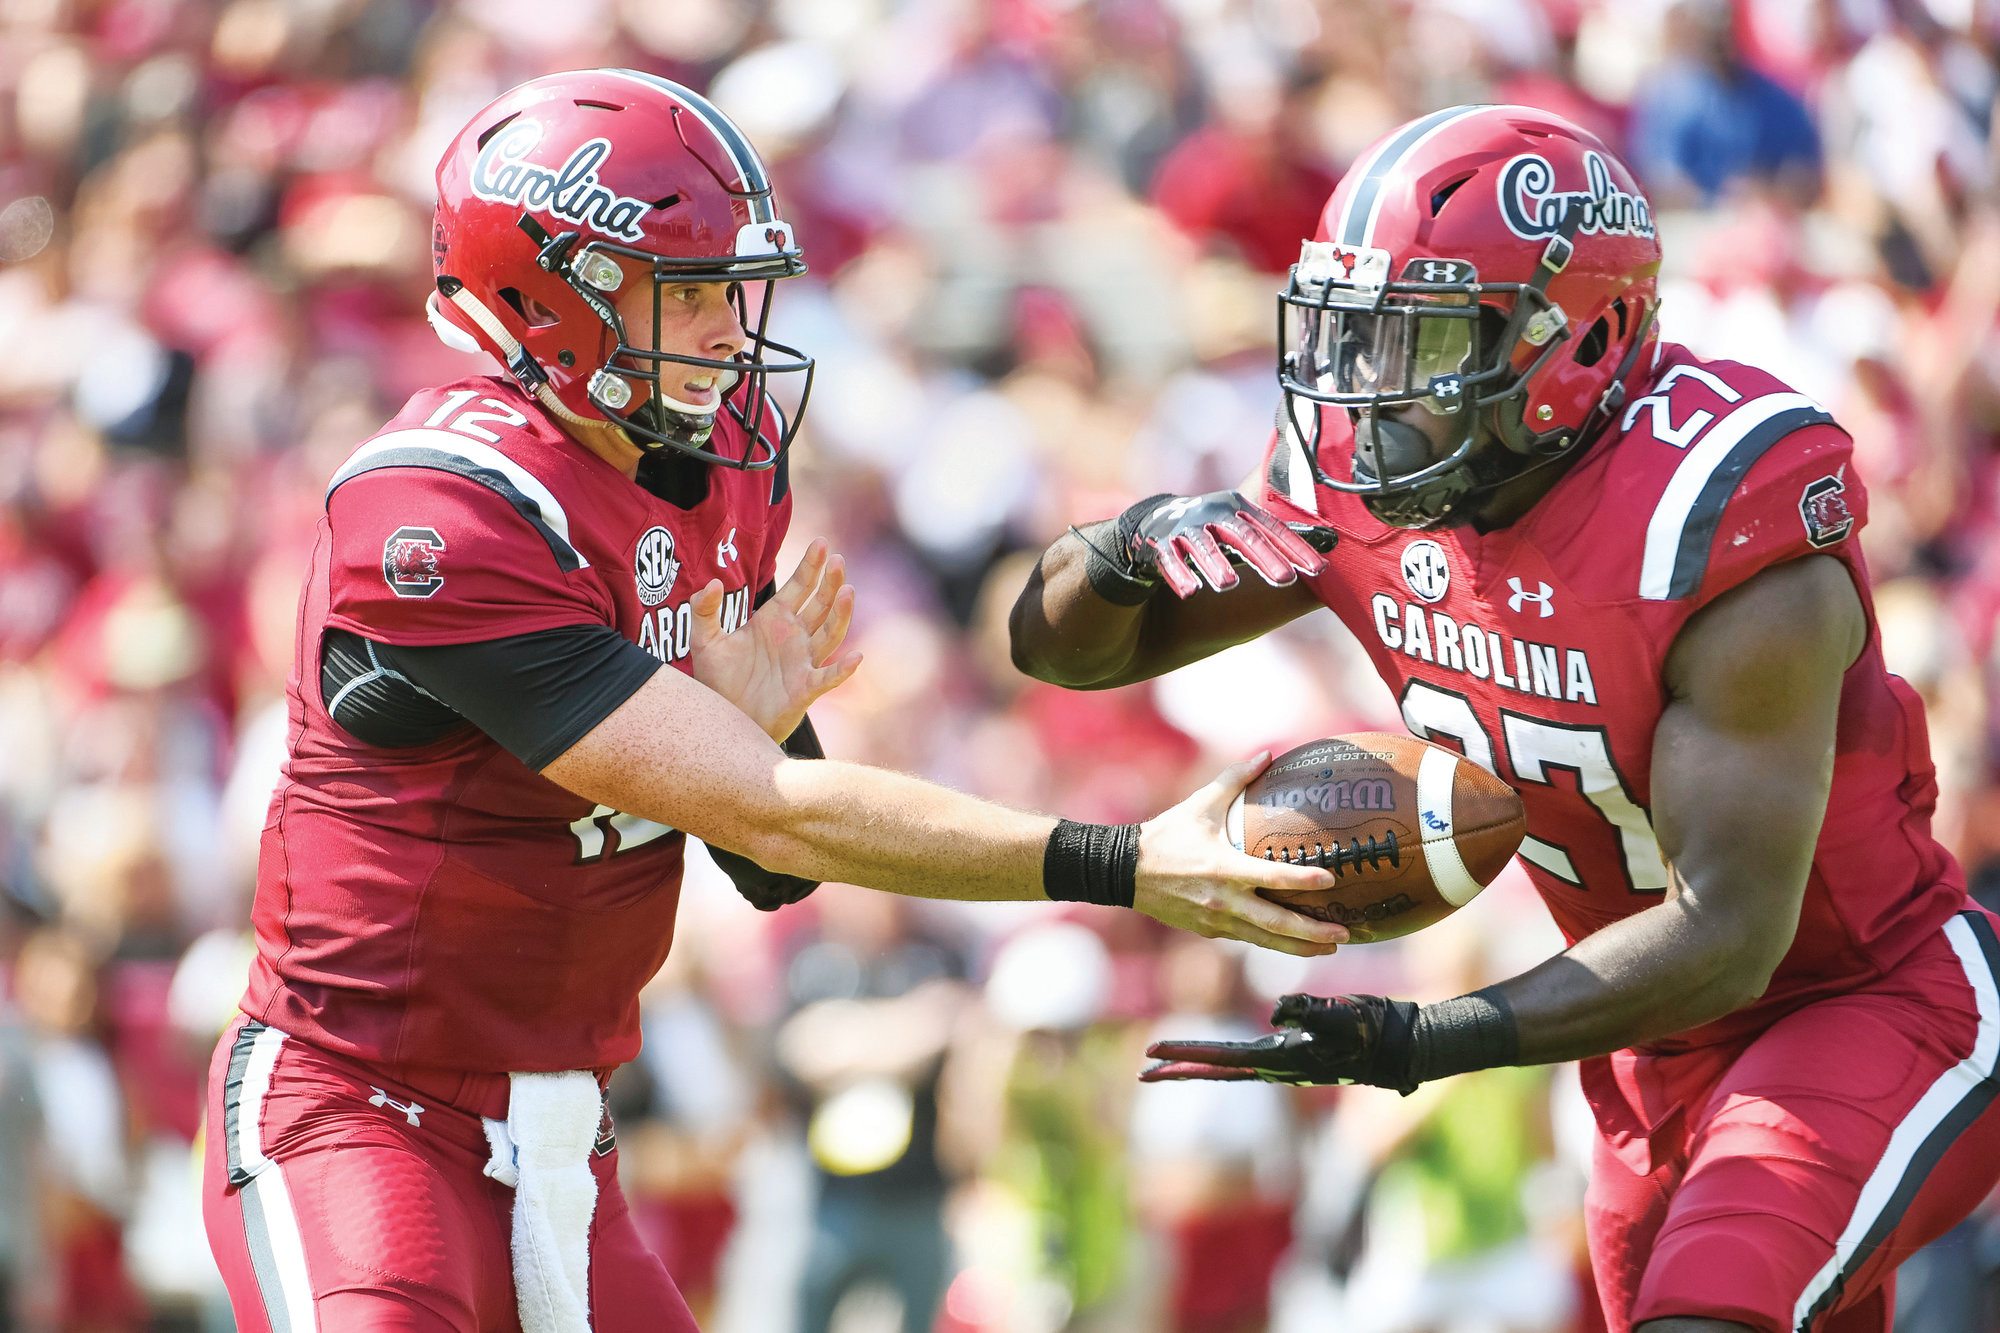 South Carolina quarterback Michael Scarnecchia (12) hands off to Ty'Son Williams (27) during the first half of an NCAA college football game against Missouri Saturday, Oct. 6, 2018, in Columbia, S.C. (AP Photo/Sean Rayford)